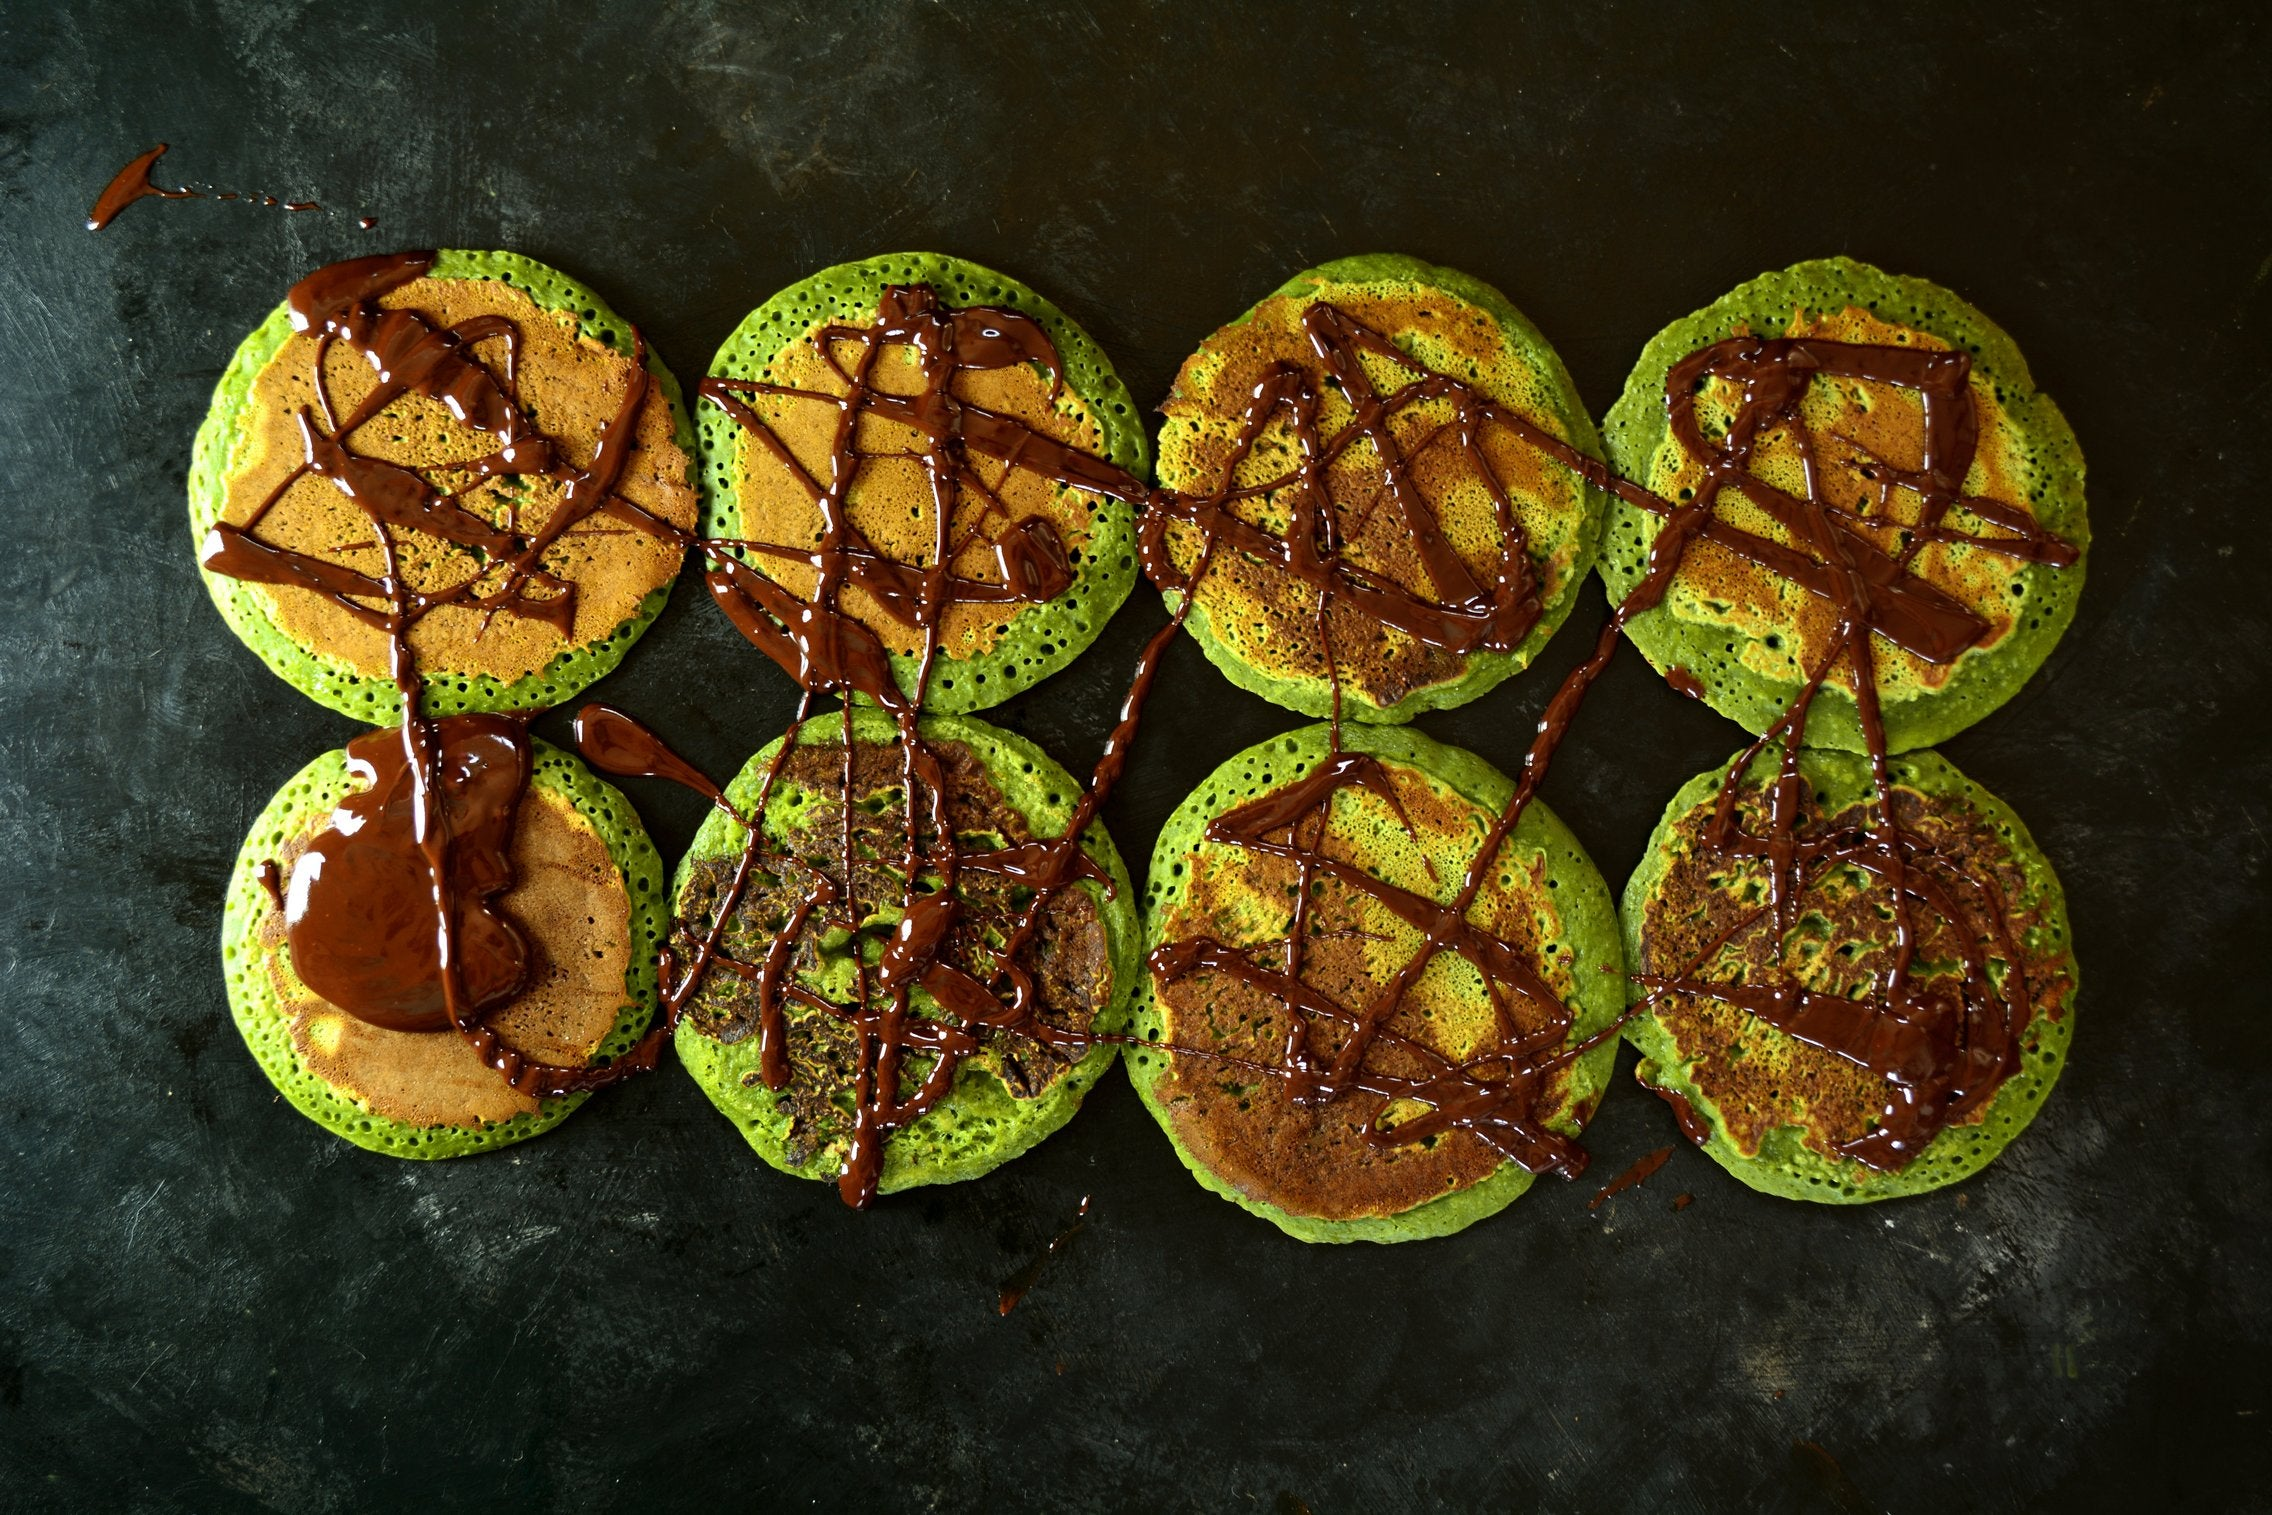 Matcha Pancakes With The Chocolate Sauce